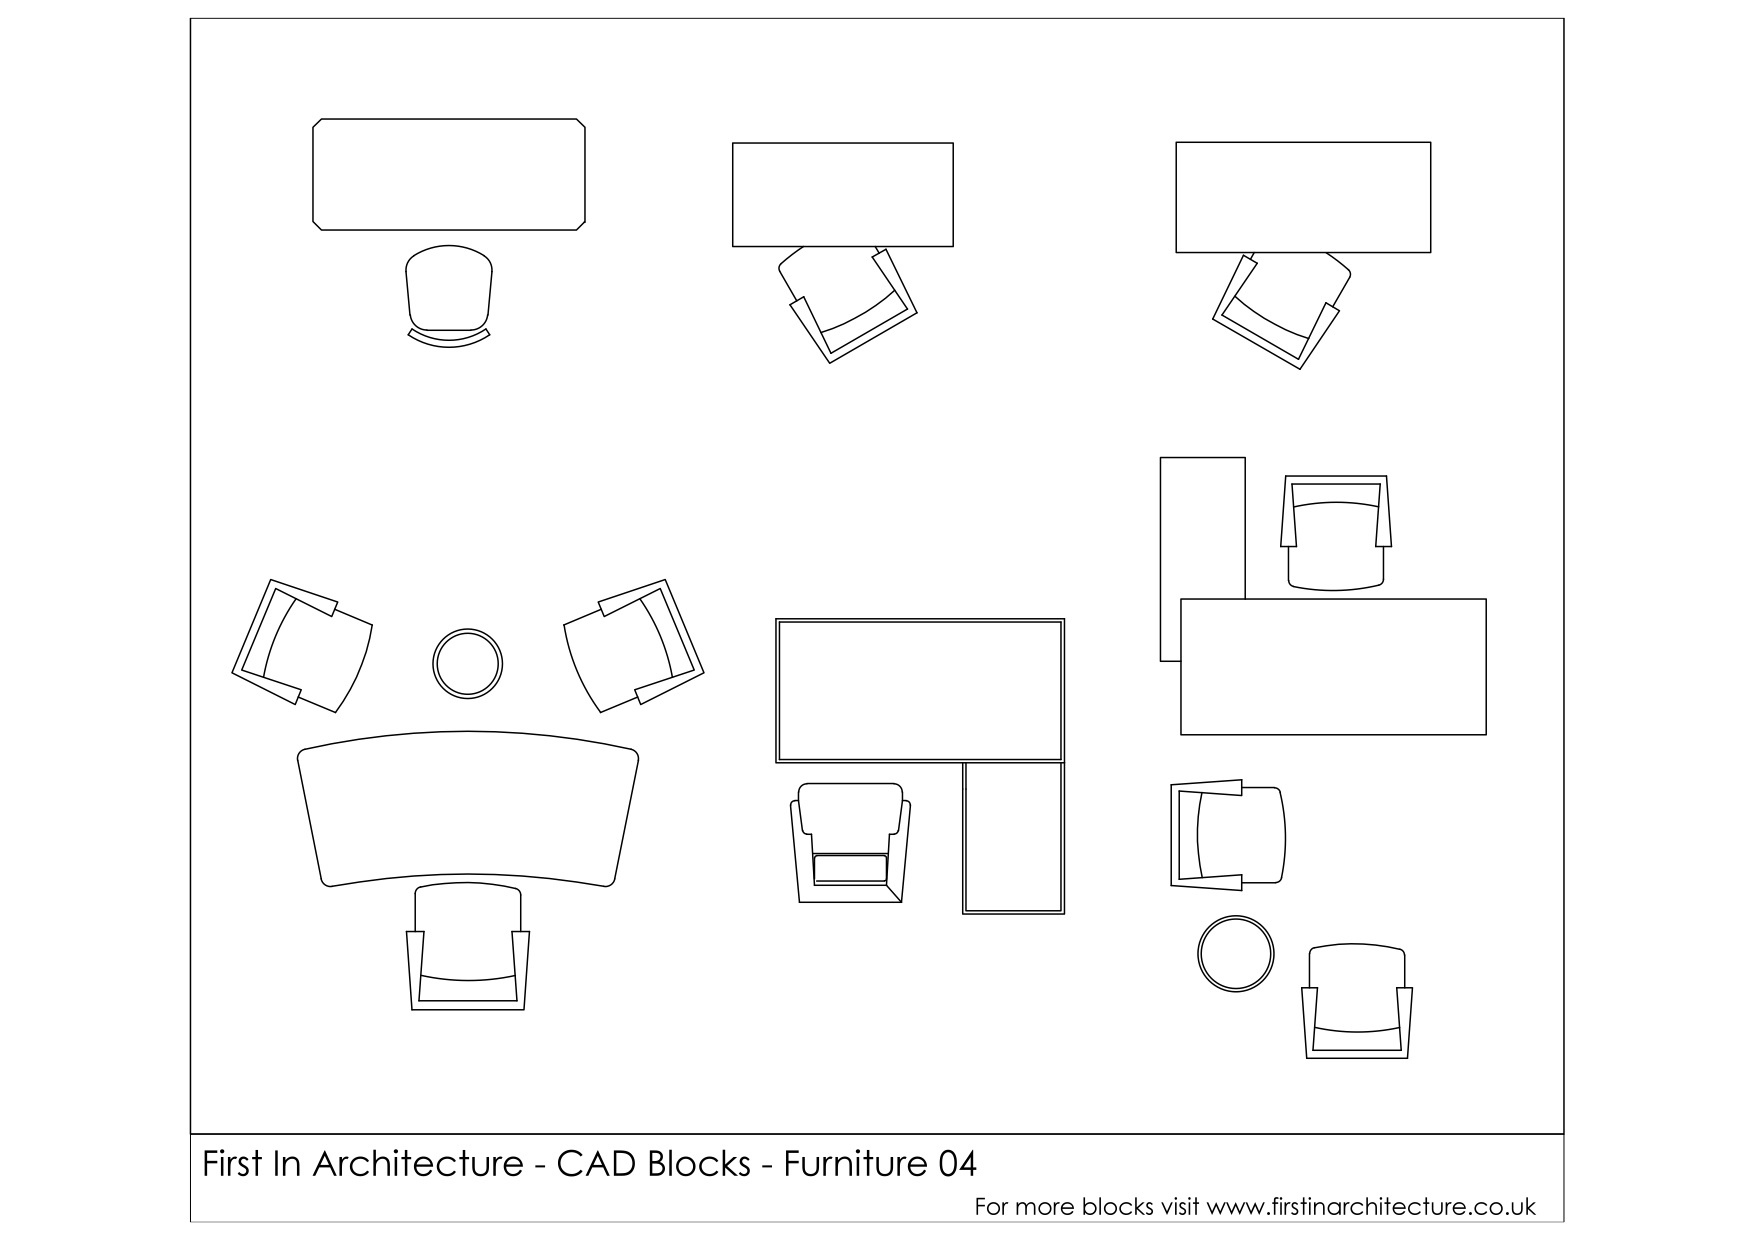 Classroom Furniture Cad ~ Free cad blocks furniture office desks first in